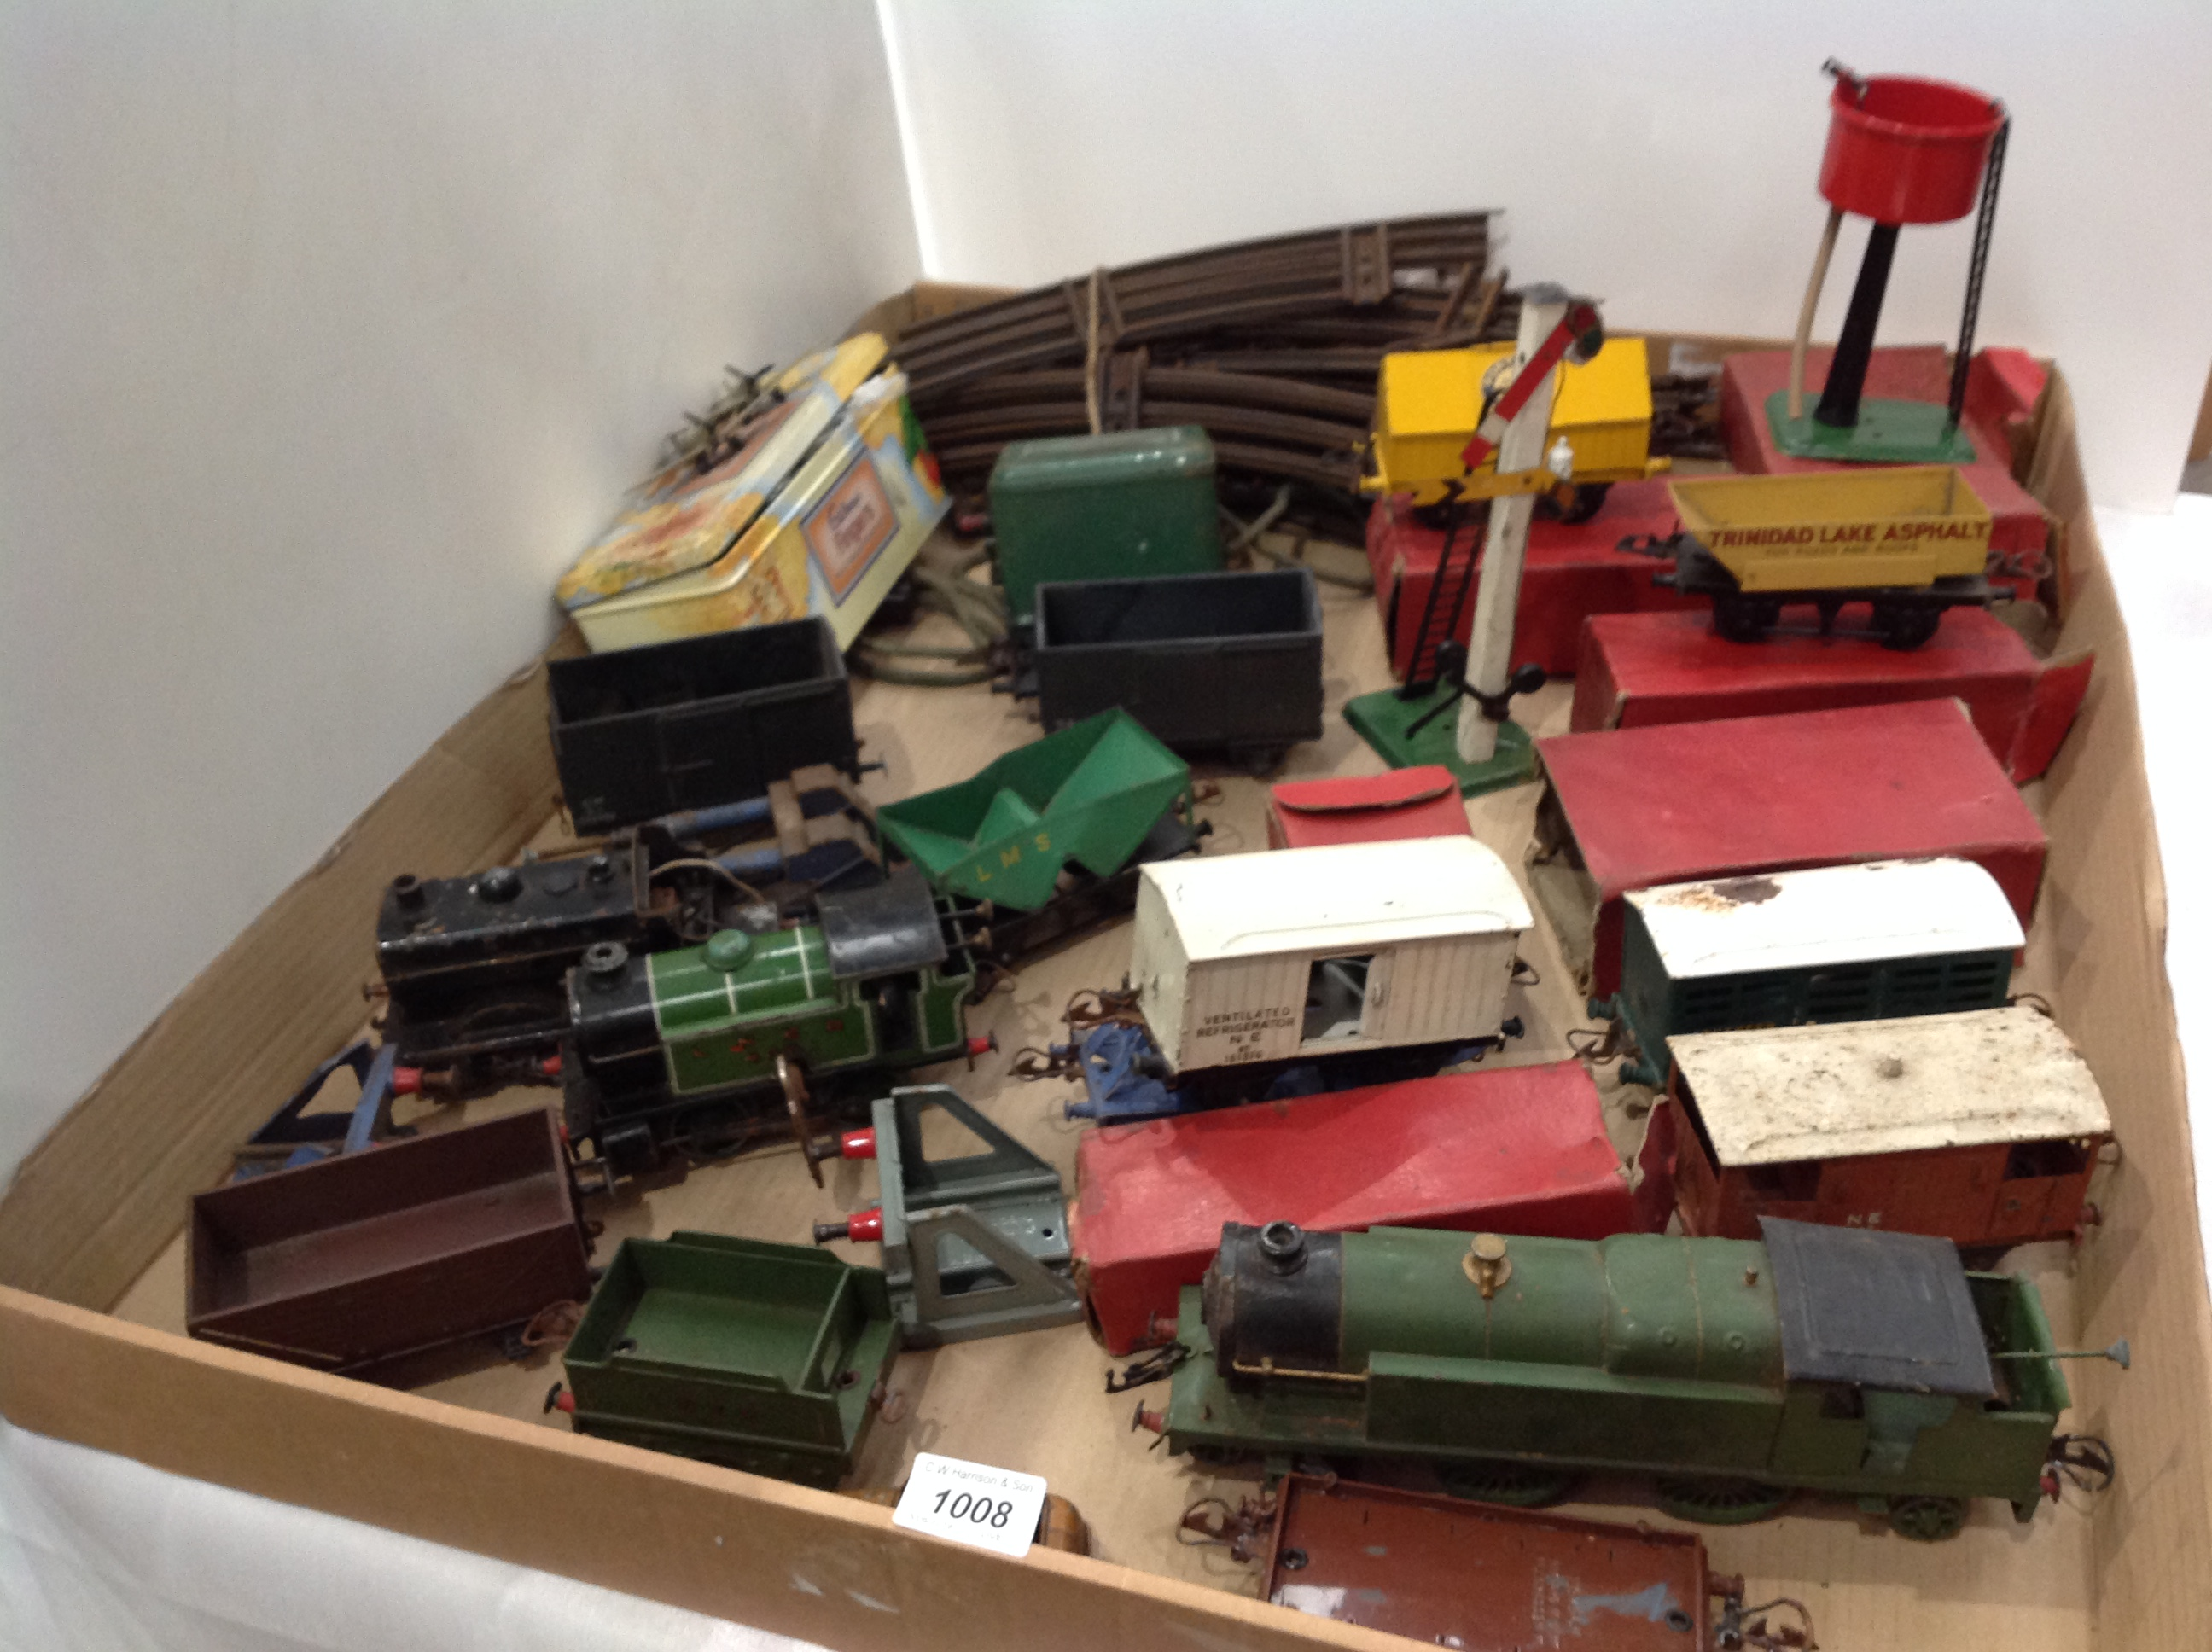 Lot 1008 - Contents to tray - a collection of Hornby Meccano 'O' gauge model railway items including a